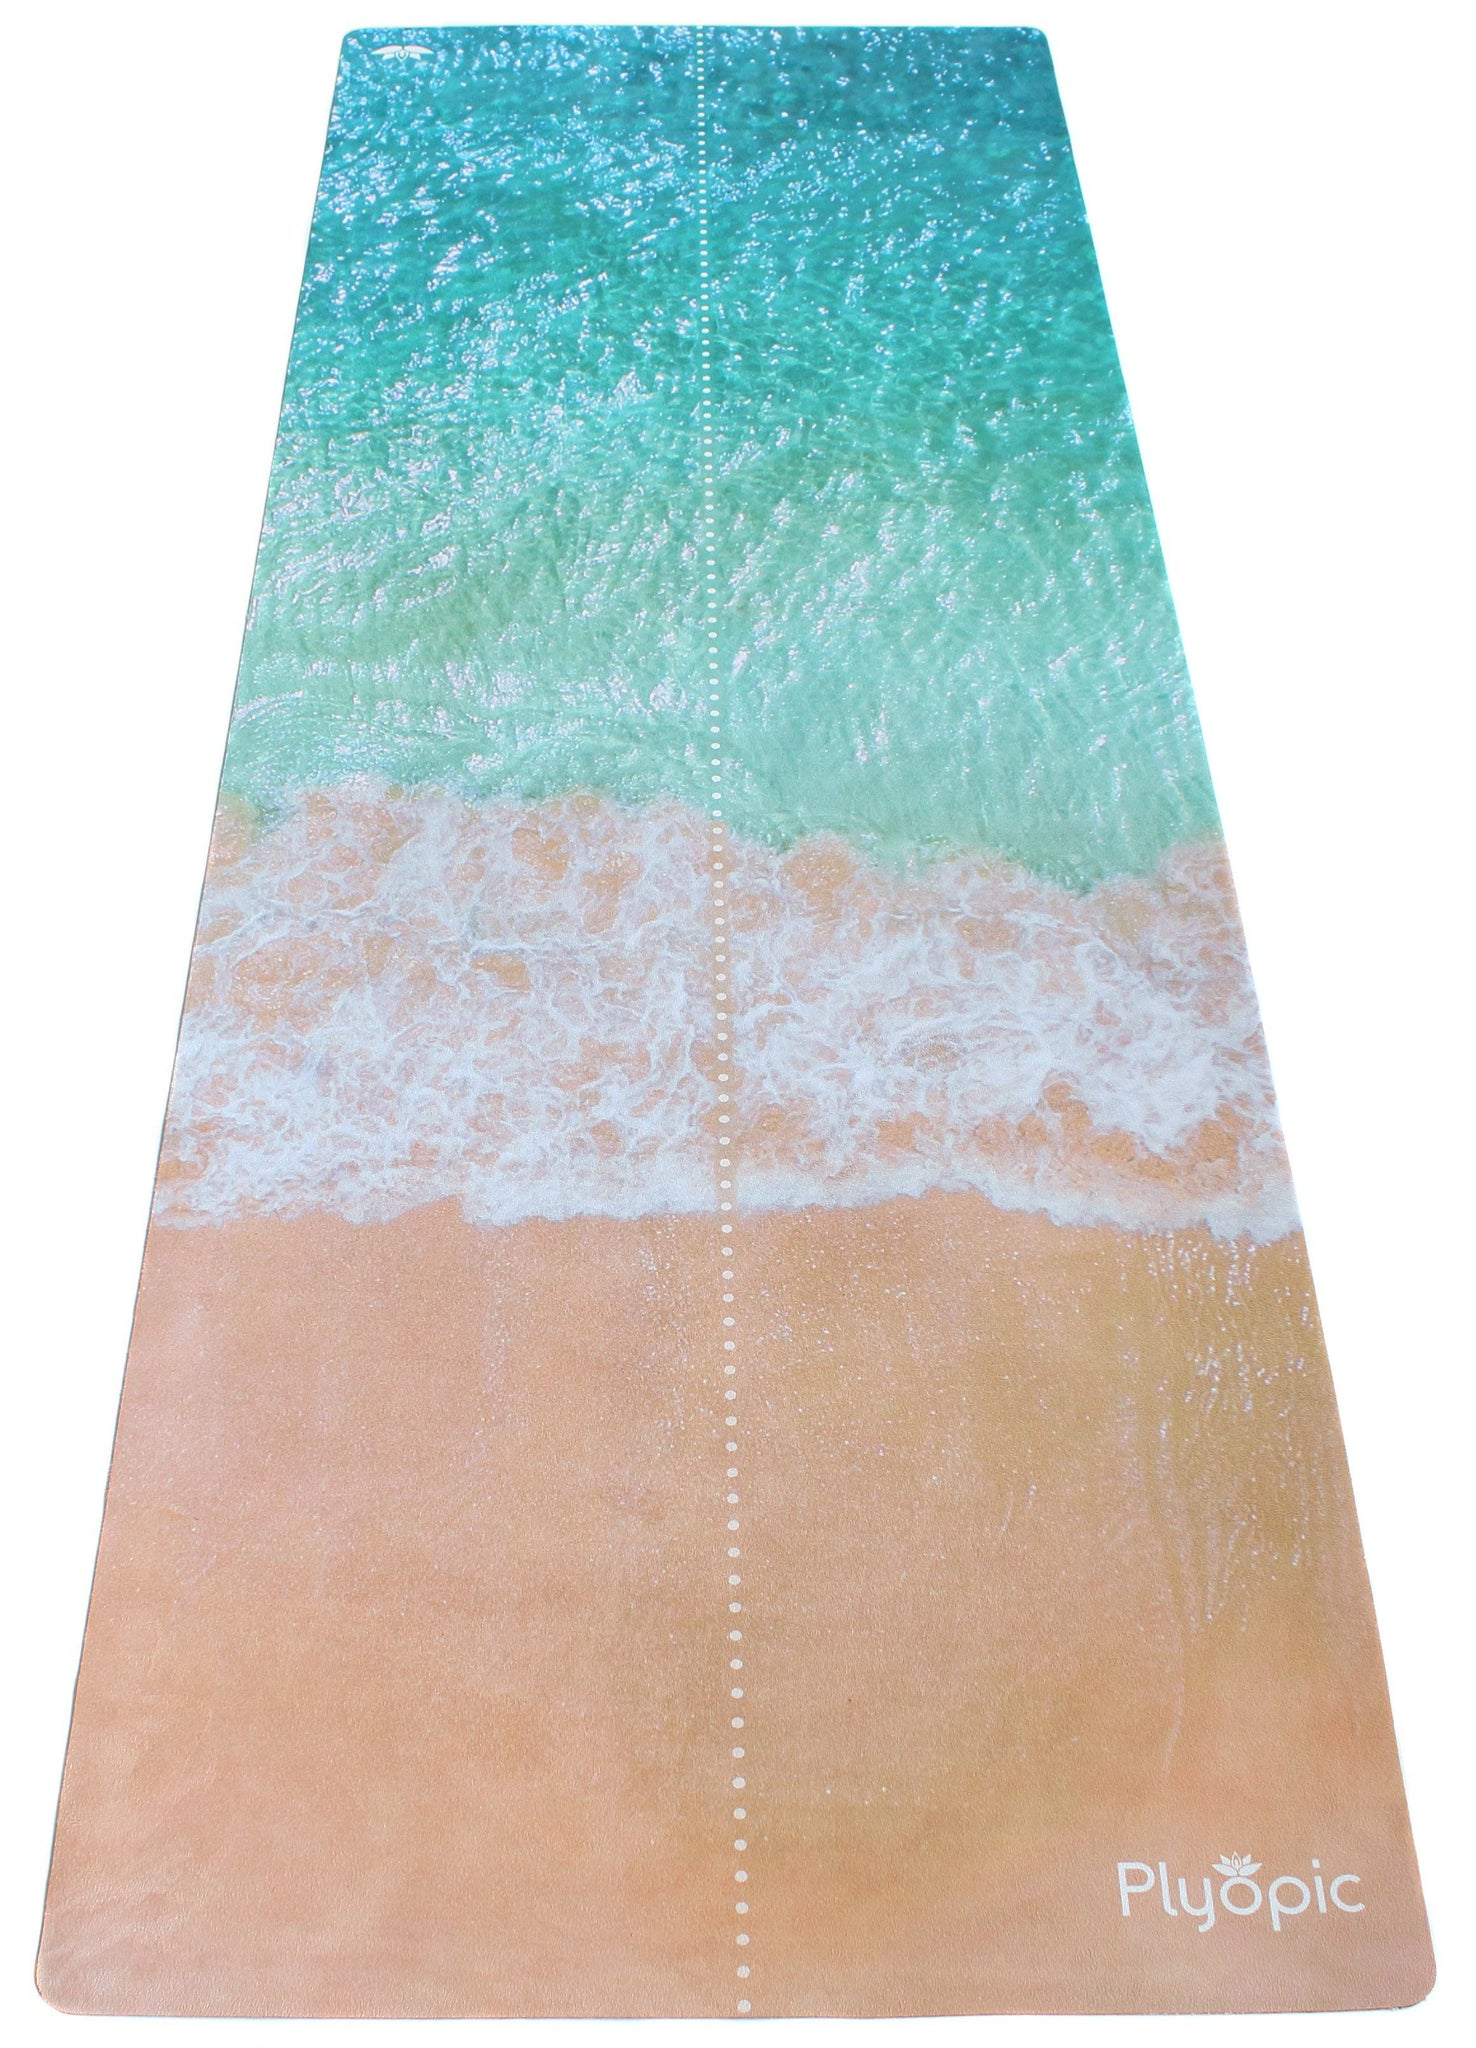 Plyopic-Travel Yoga Mat / Towel Beach Face-Yoga Mat